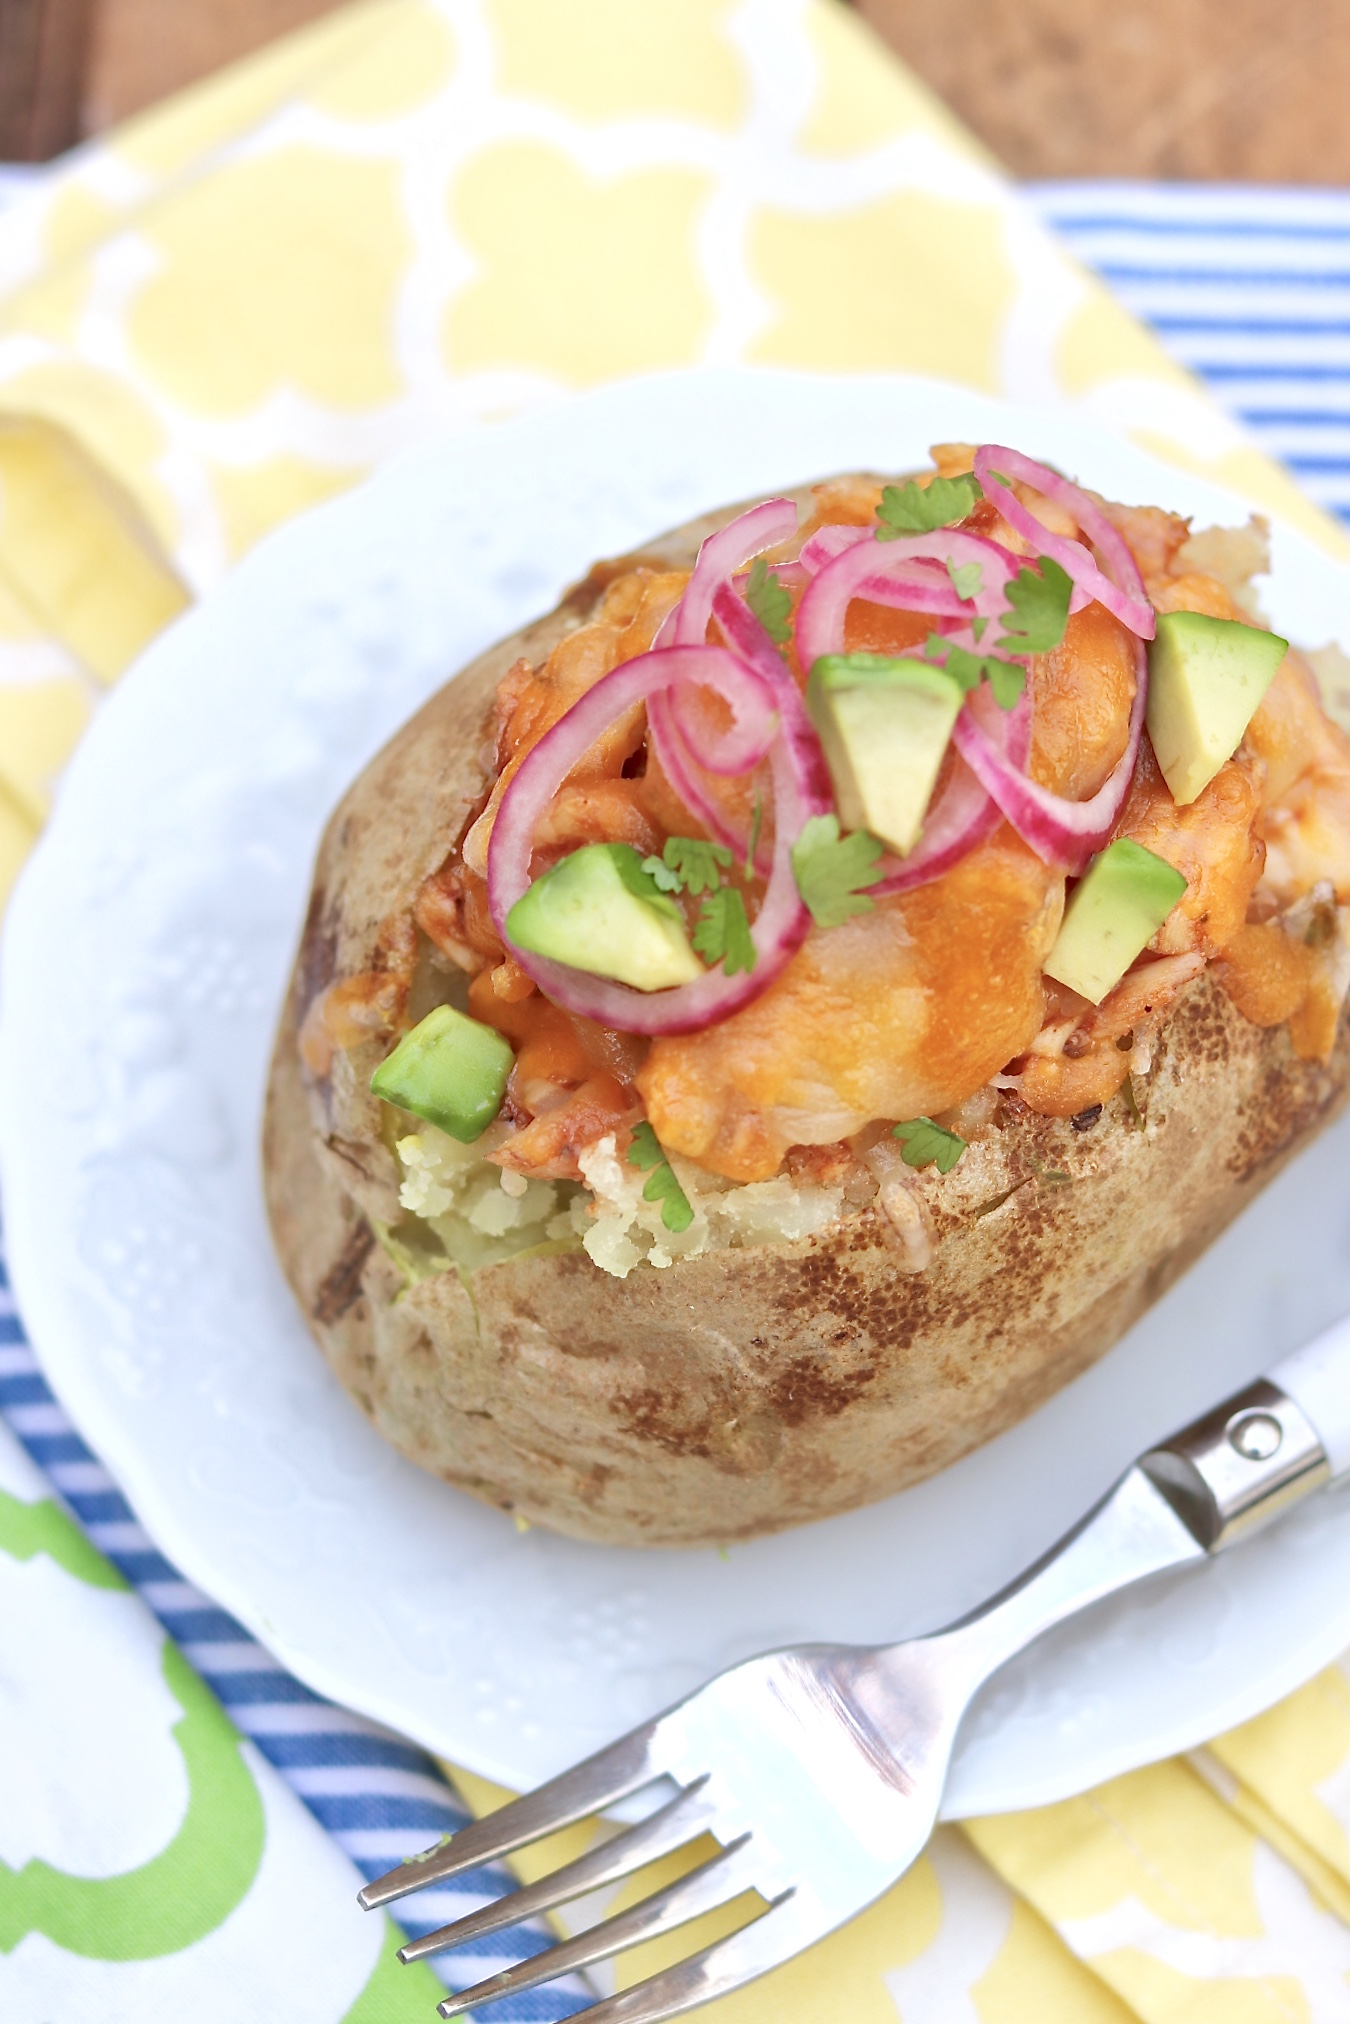 BBQ Chicken Stuffed Potatoes - The easiest of meals also happens to be hearty, healthy and endlessly adaptable.